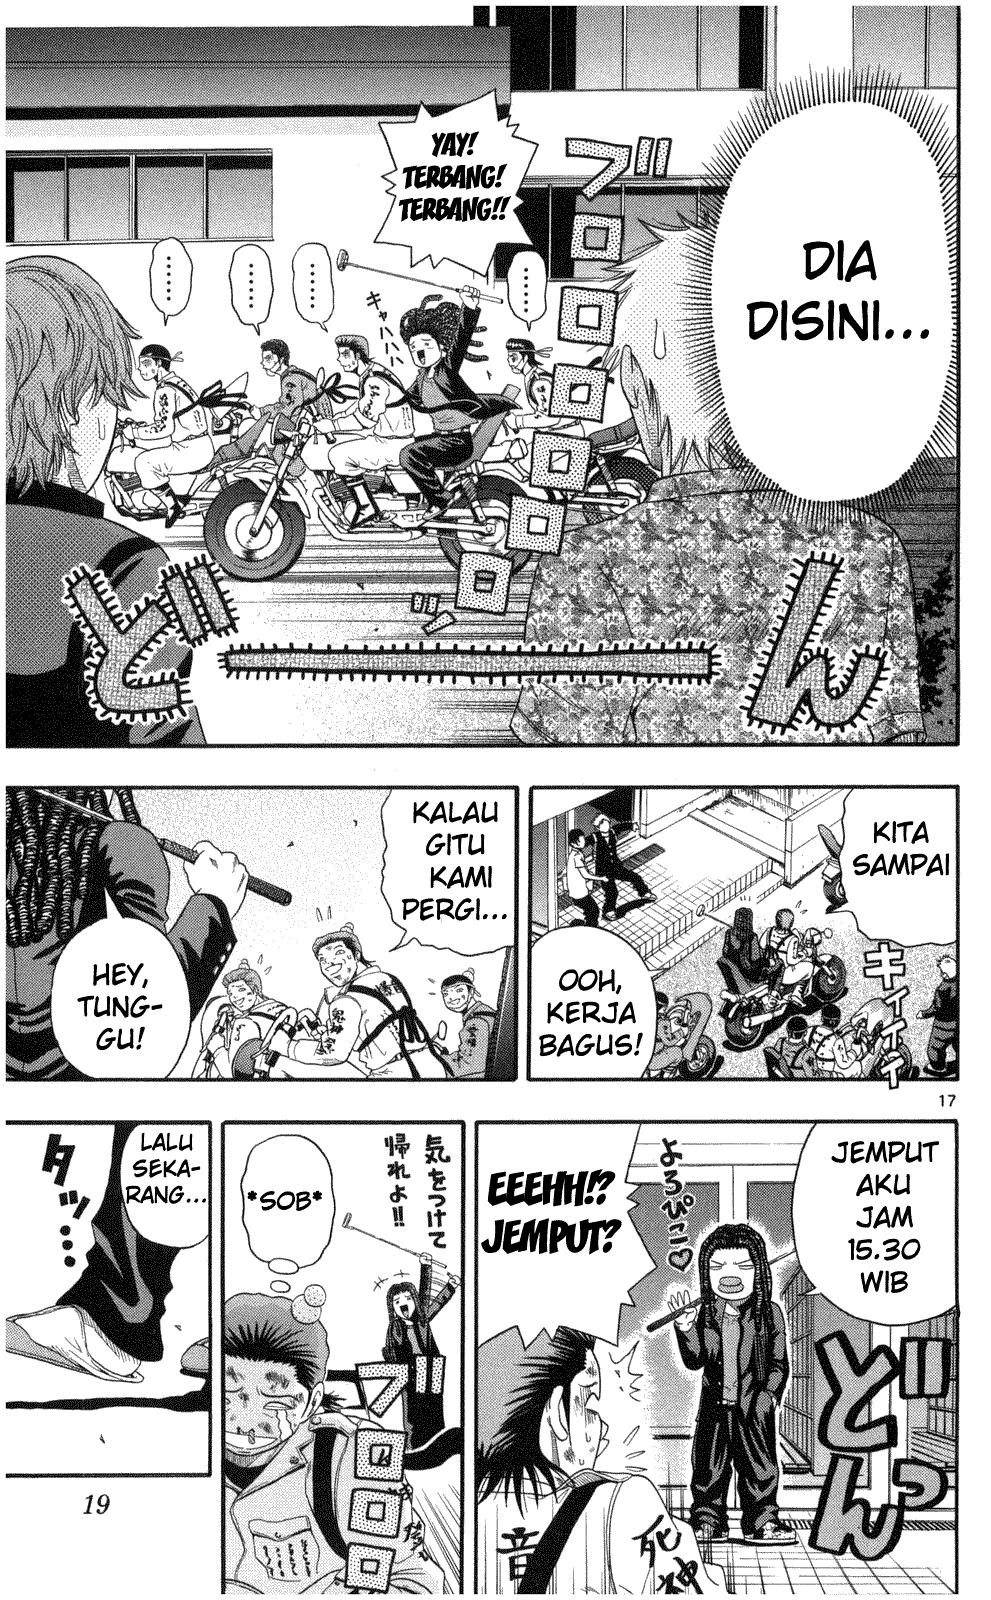 Komik king golf 001 - chapter 1 2 Indonesia king golf 001 - chapter 1 Terbaru 17|Baca Manga Komik Indonesia|